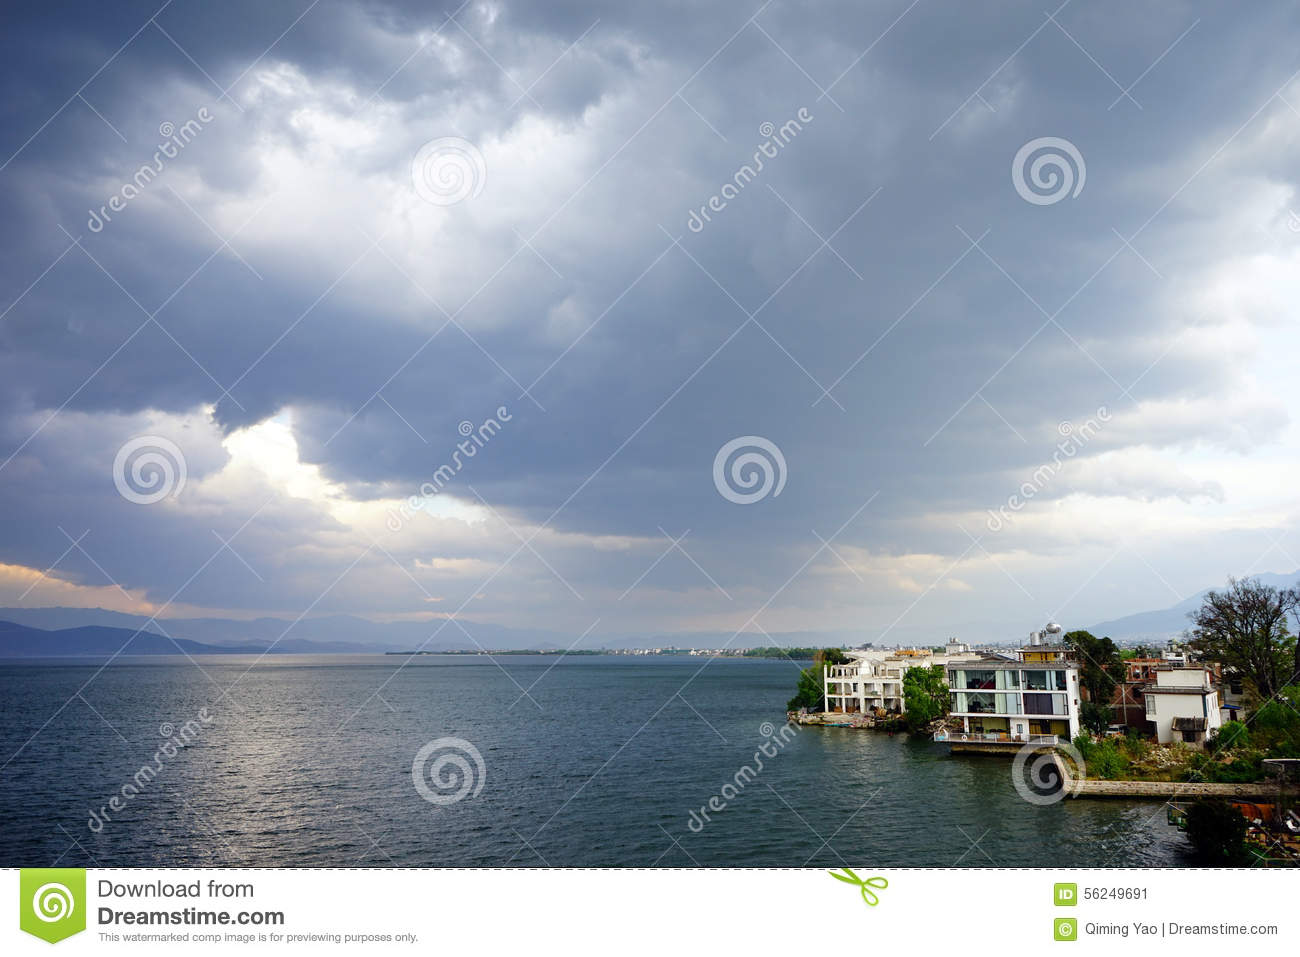 Cloudy Day Stock Photo - Image: 56249691